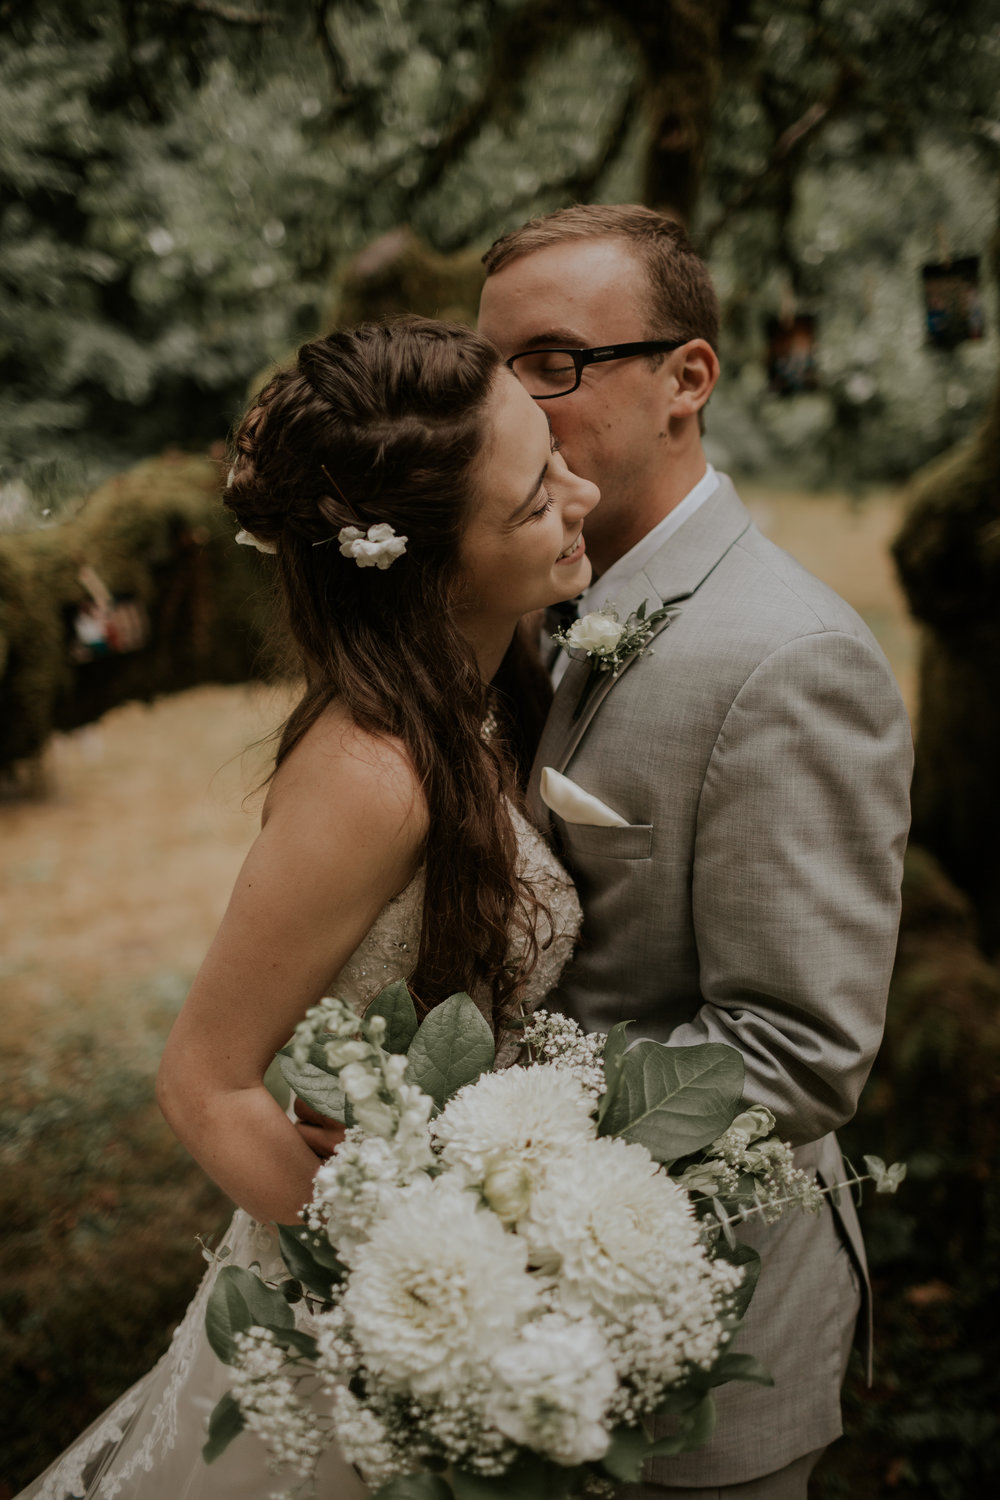 Port-Angeles-elopement-wedding-pnw-olympic-peninsula-photographer-portrait-kayladawnphoto-kayla-dawn-photography-olympic-national-park-172.jpg